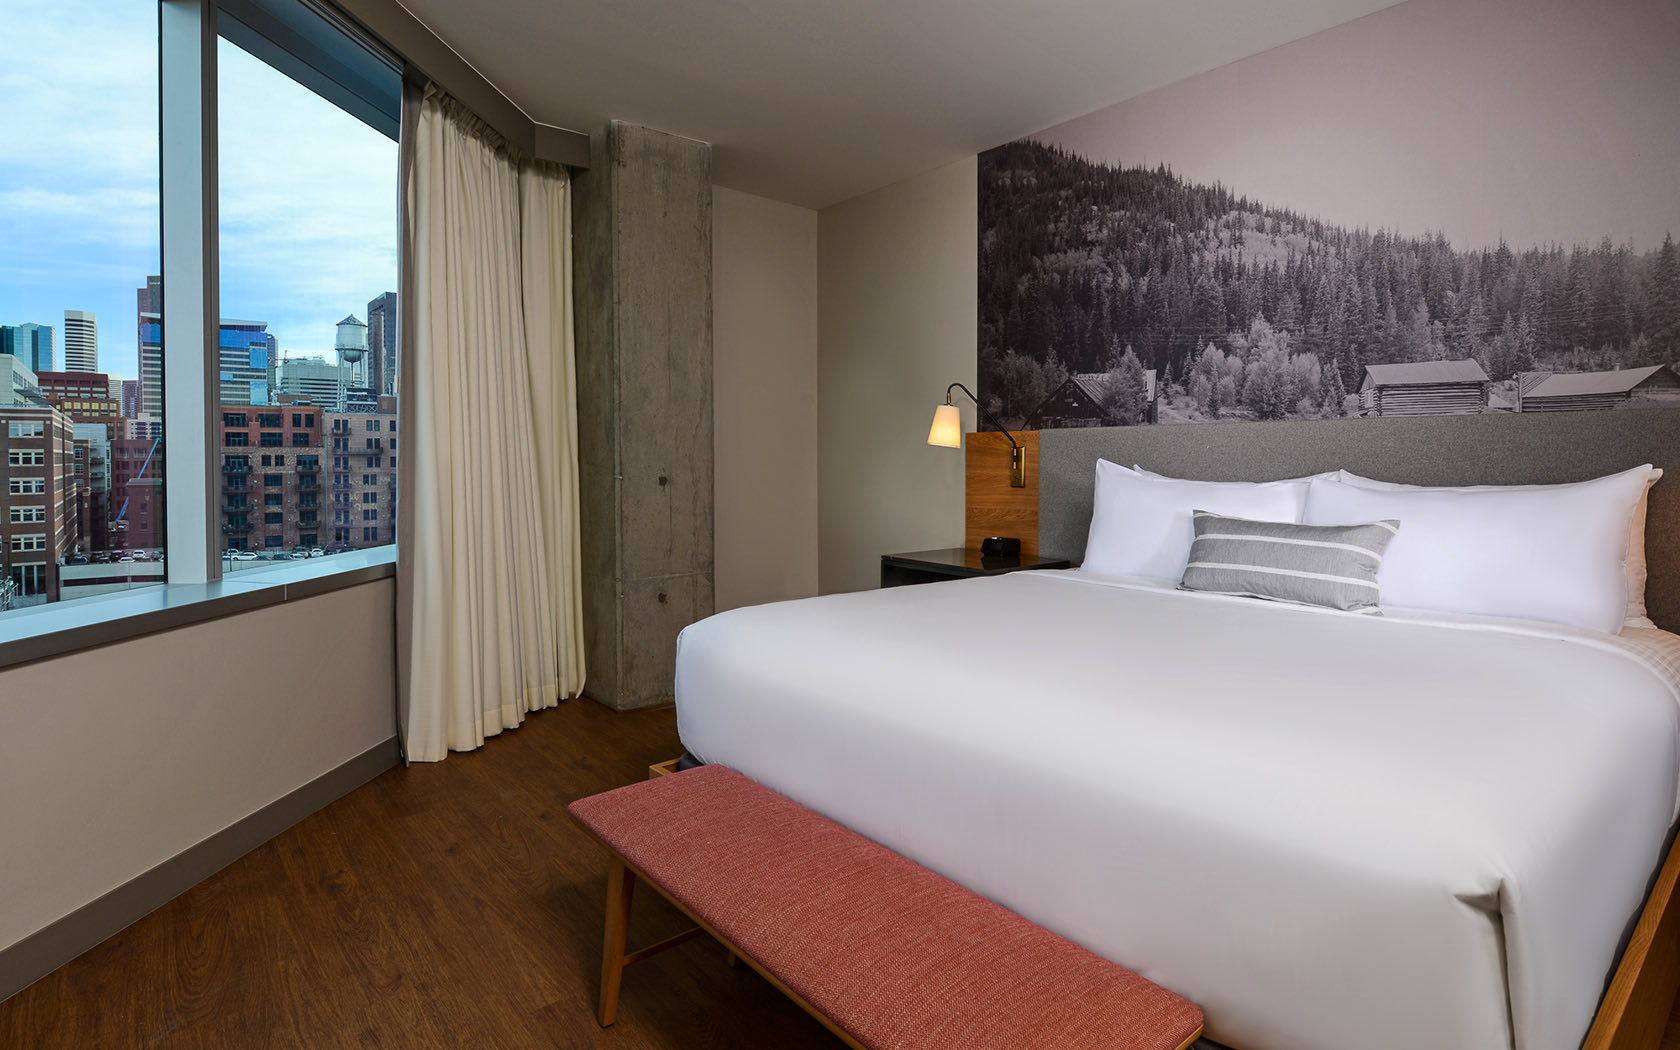 bedroom suite with large picture of mountains in the background